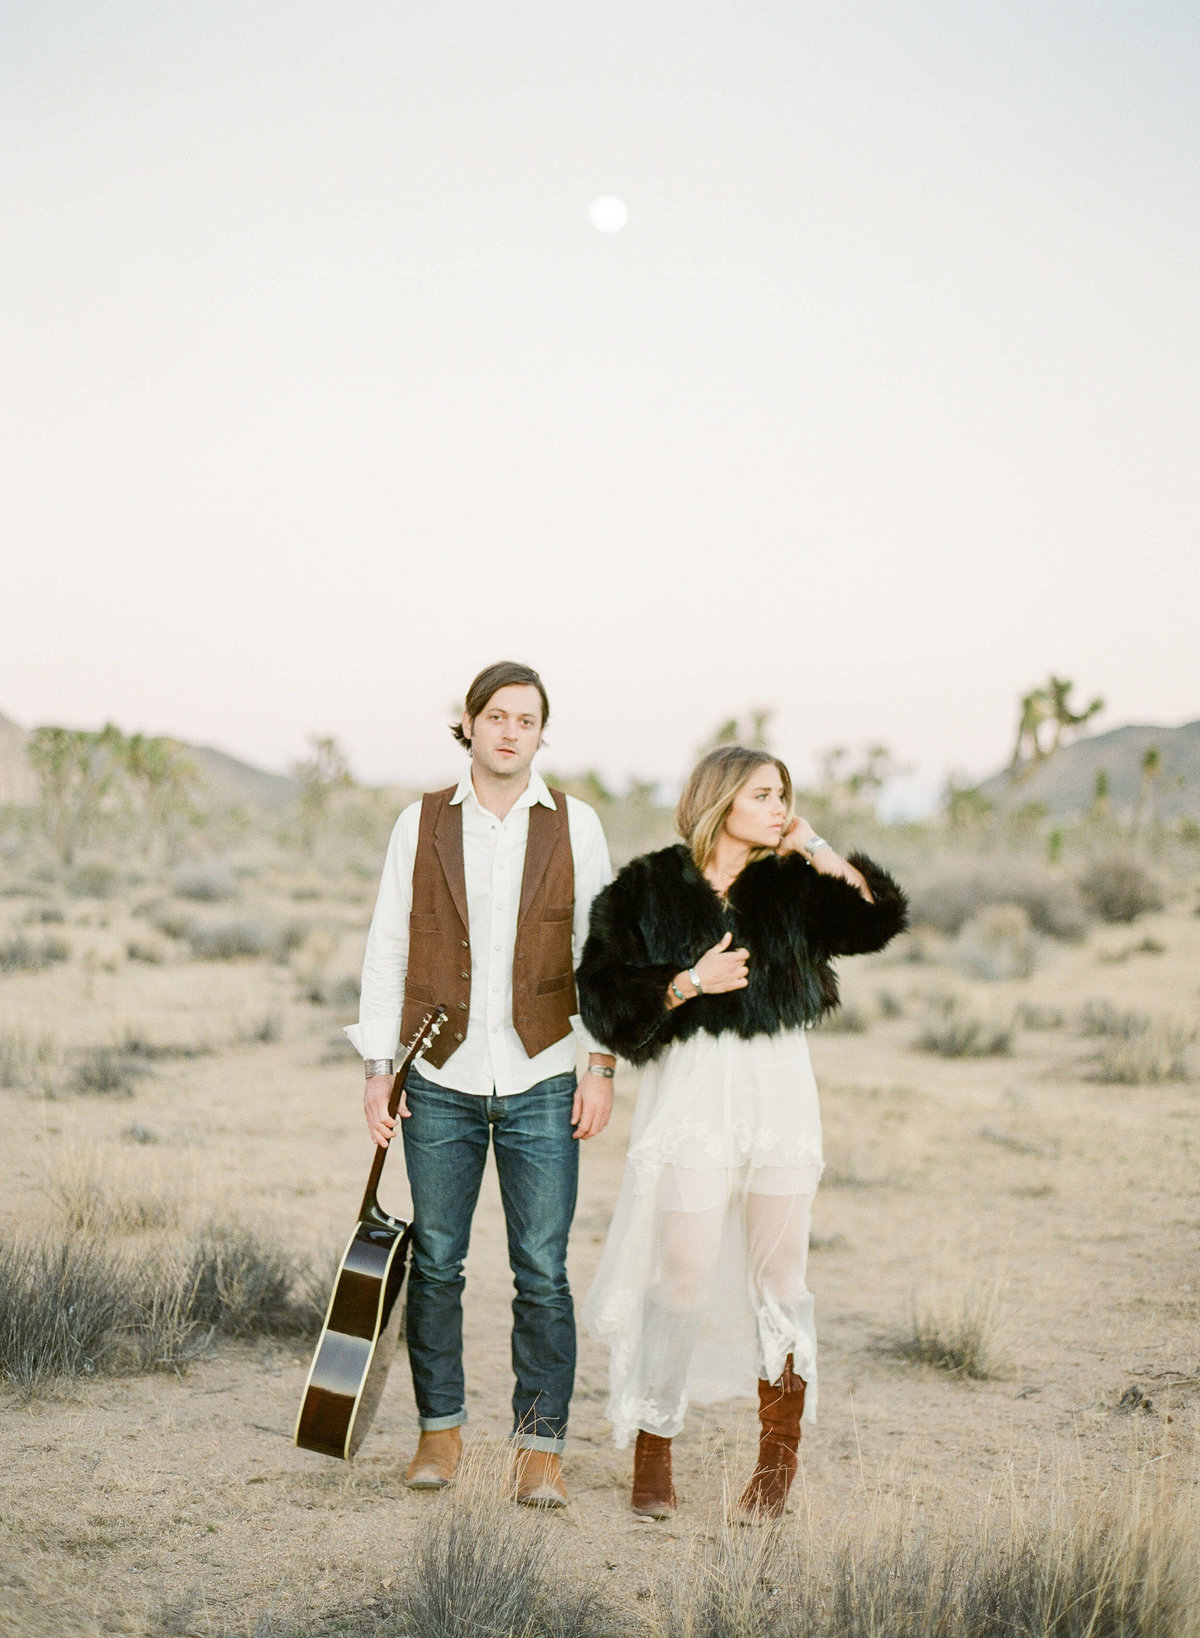 27-KTMerry-engagement-photography-guitar-Joshua-Tree